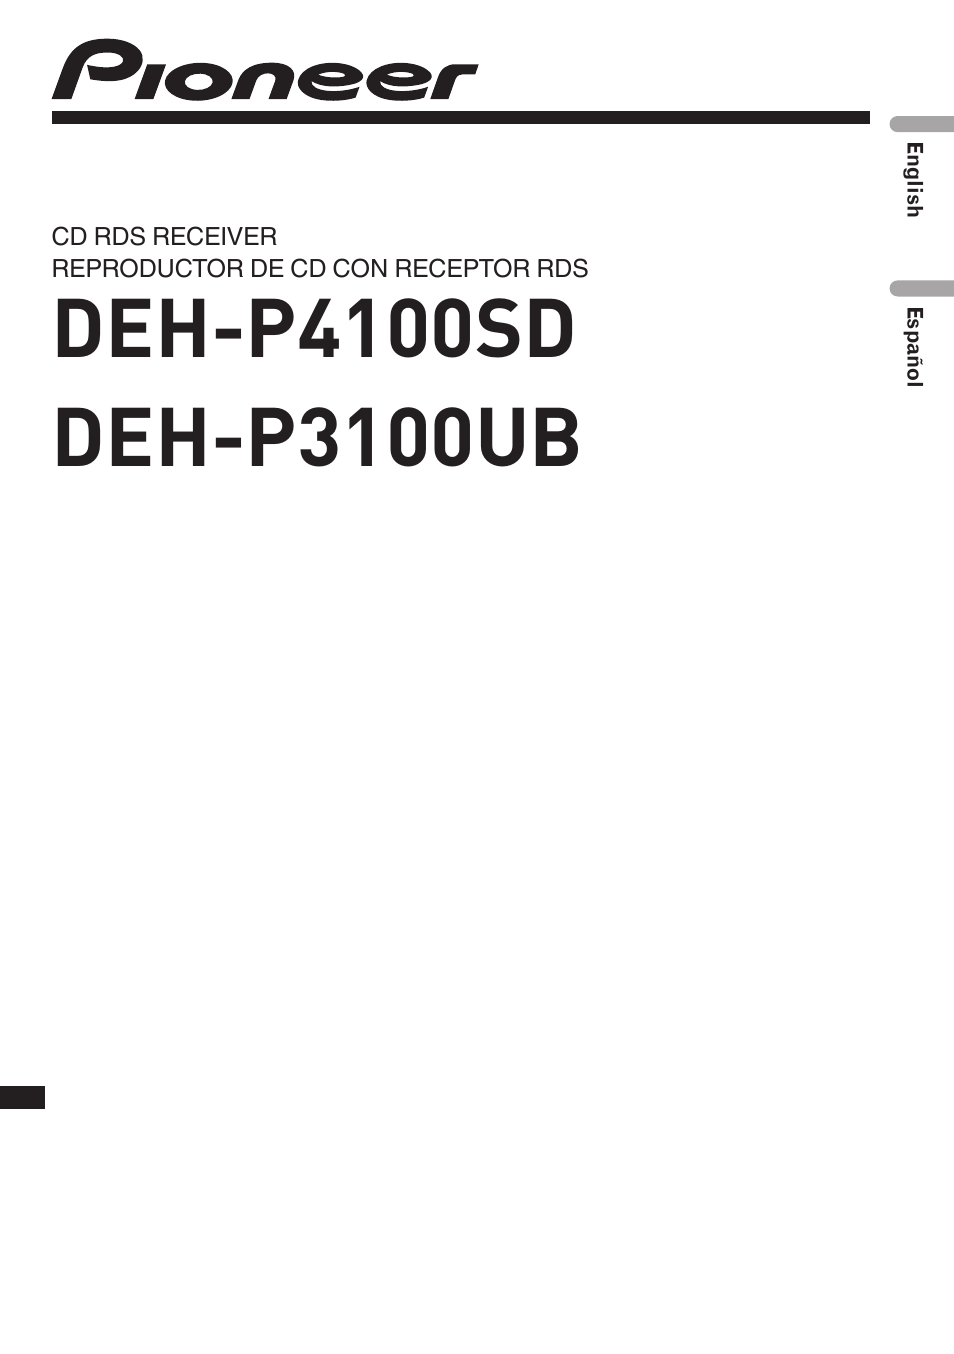 Pioneer Deh P3100ub User Manual Wiring Harness Diagram 127 Pages Also For P4100sd Rh Manualsdir Com 3100ub To A Jetta Mk4